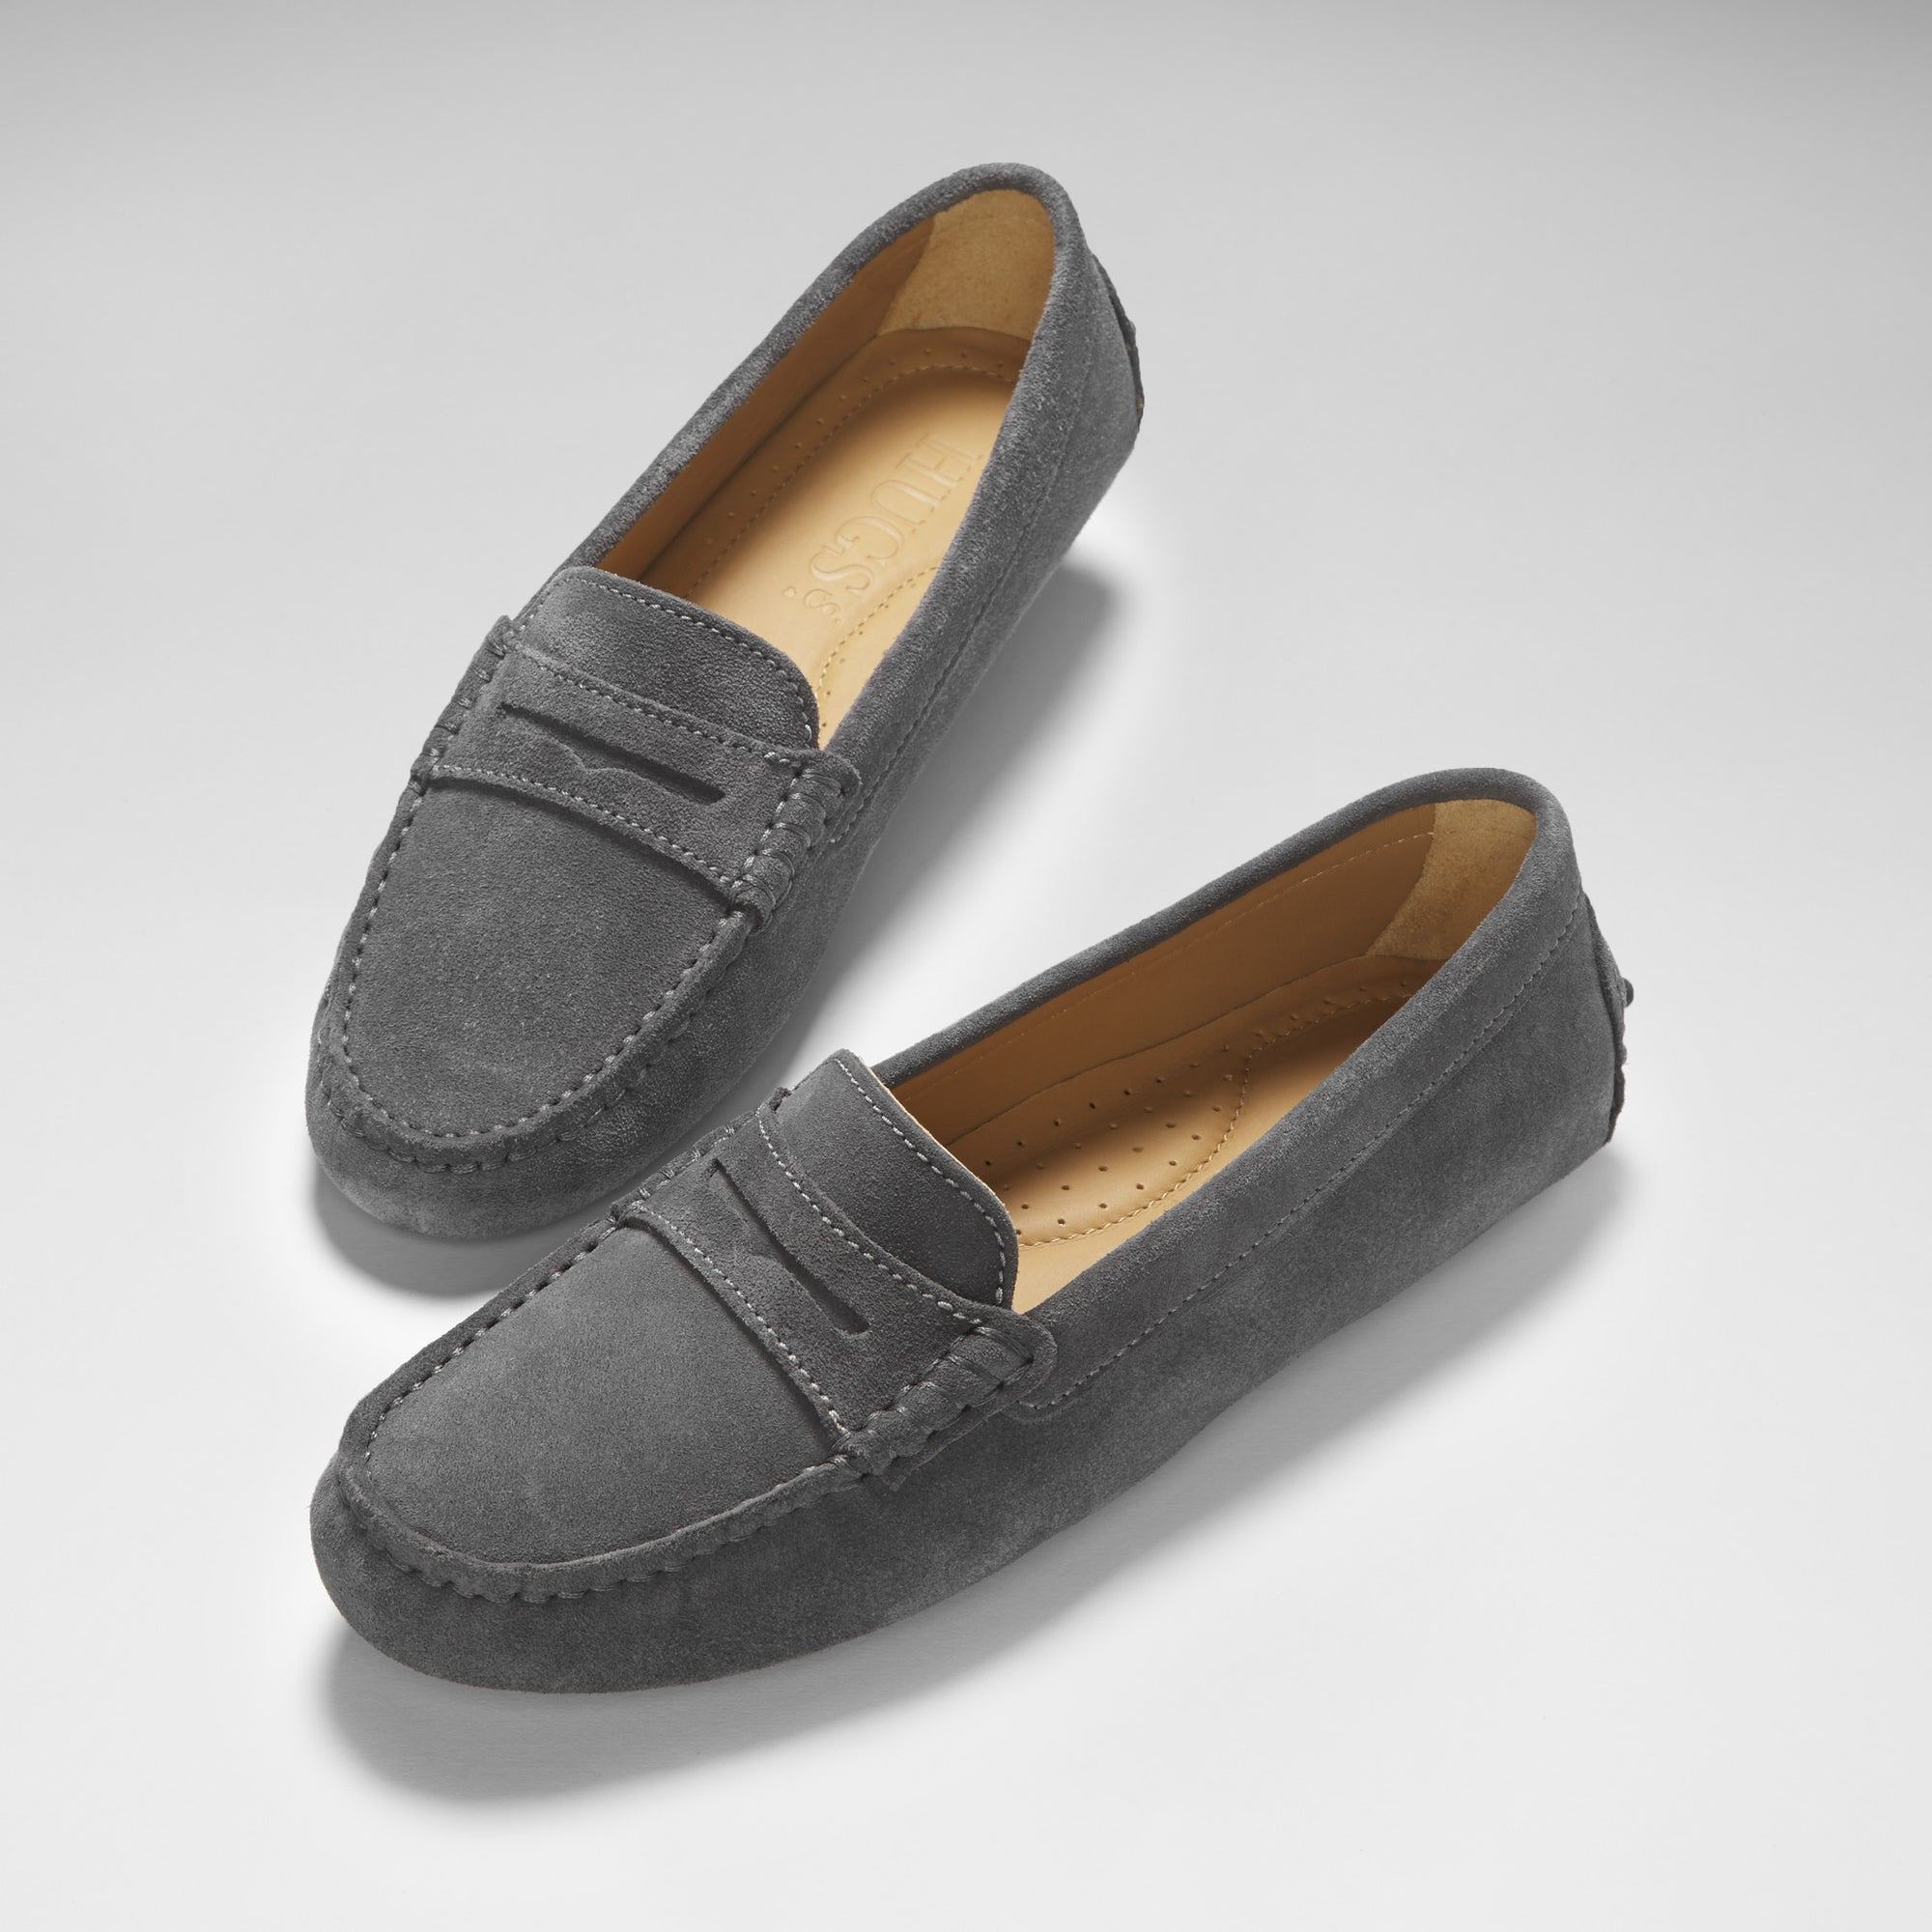 46c3dfd863b Women s Penny Driving Loafers